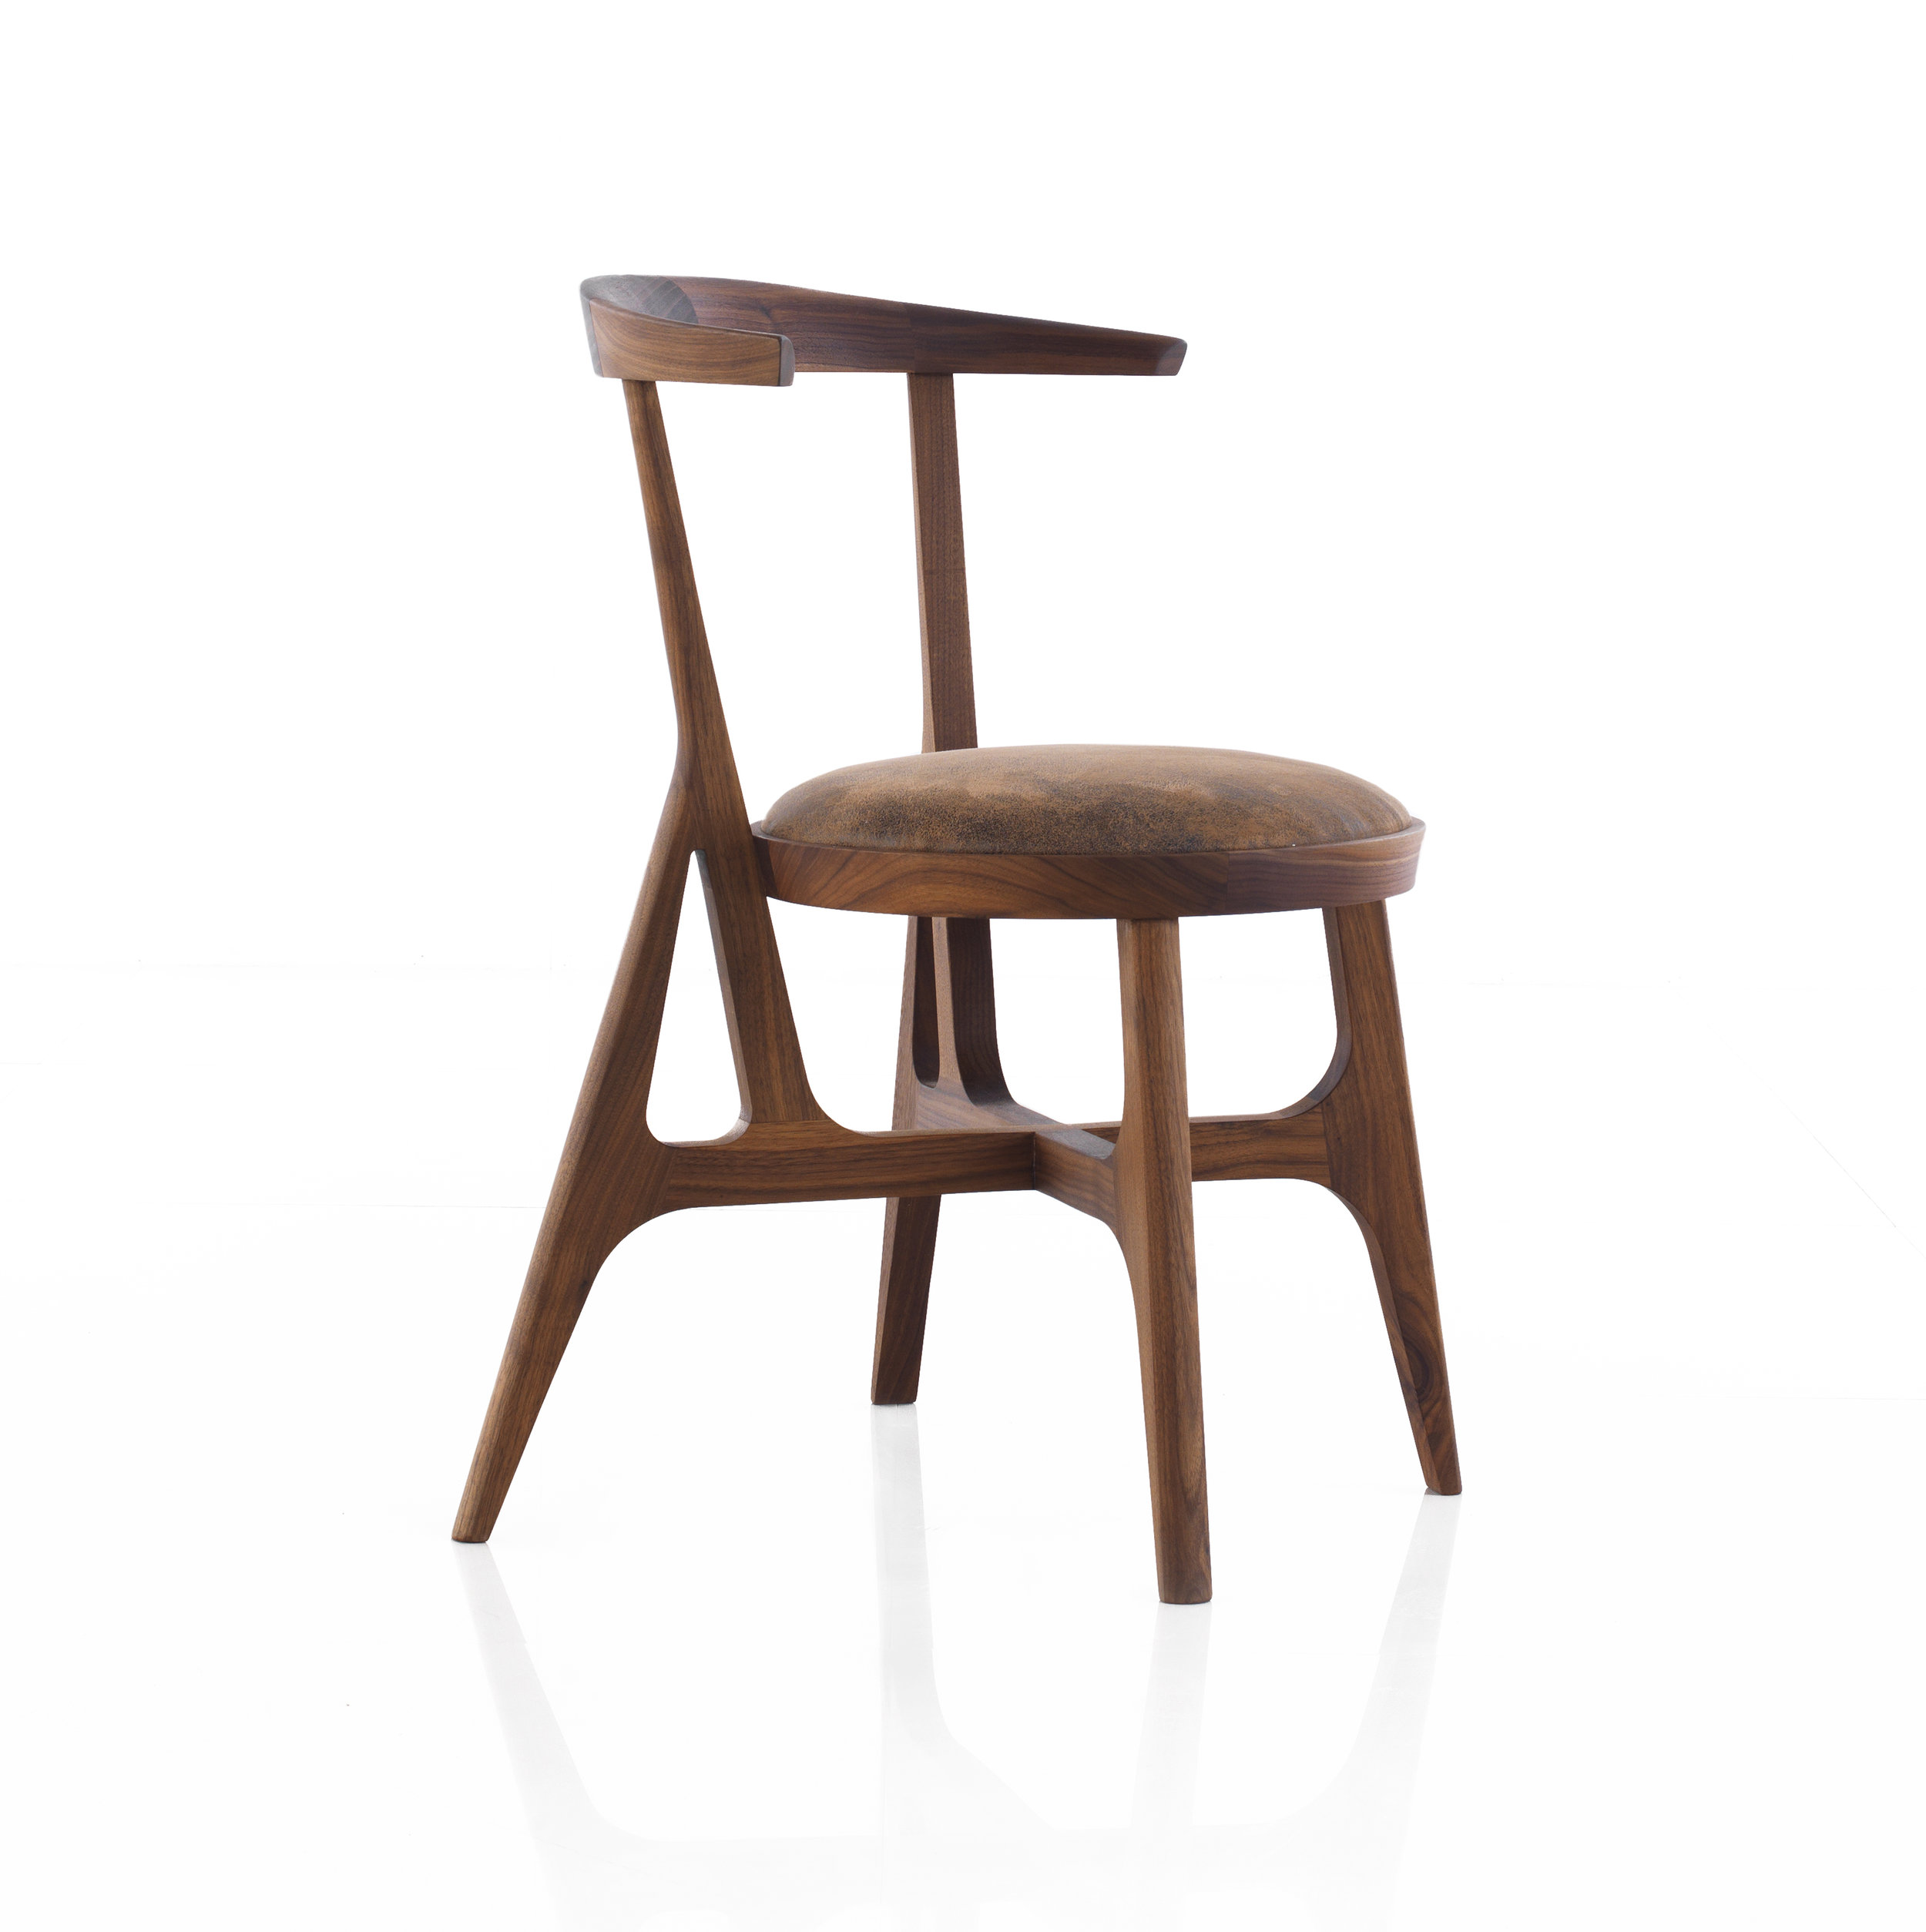 Agrippa - Hendrix Chair (NOTE: THIS IMAGE IS NOT ACTUAL SALE ITEM)